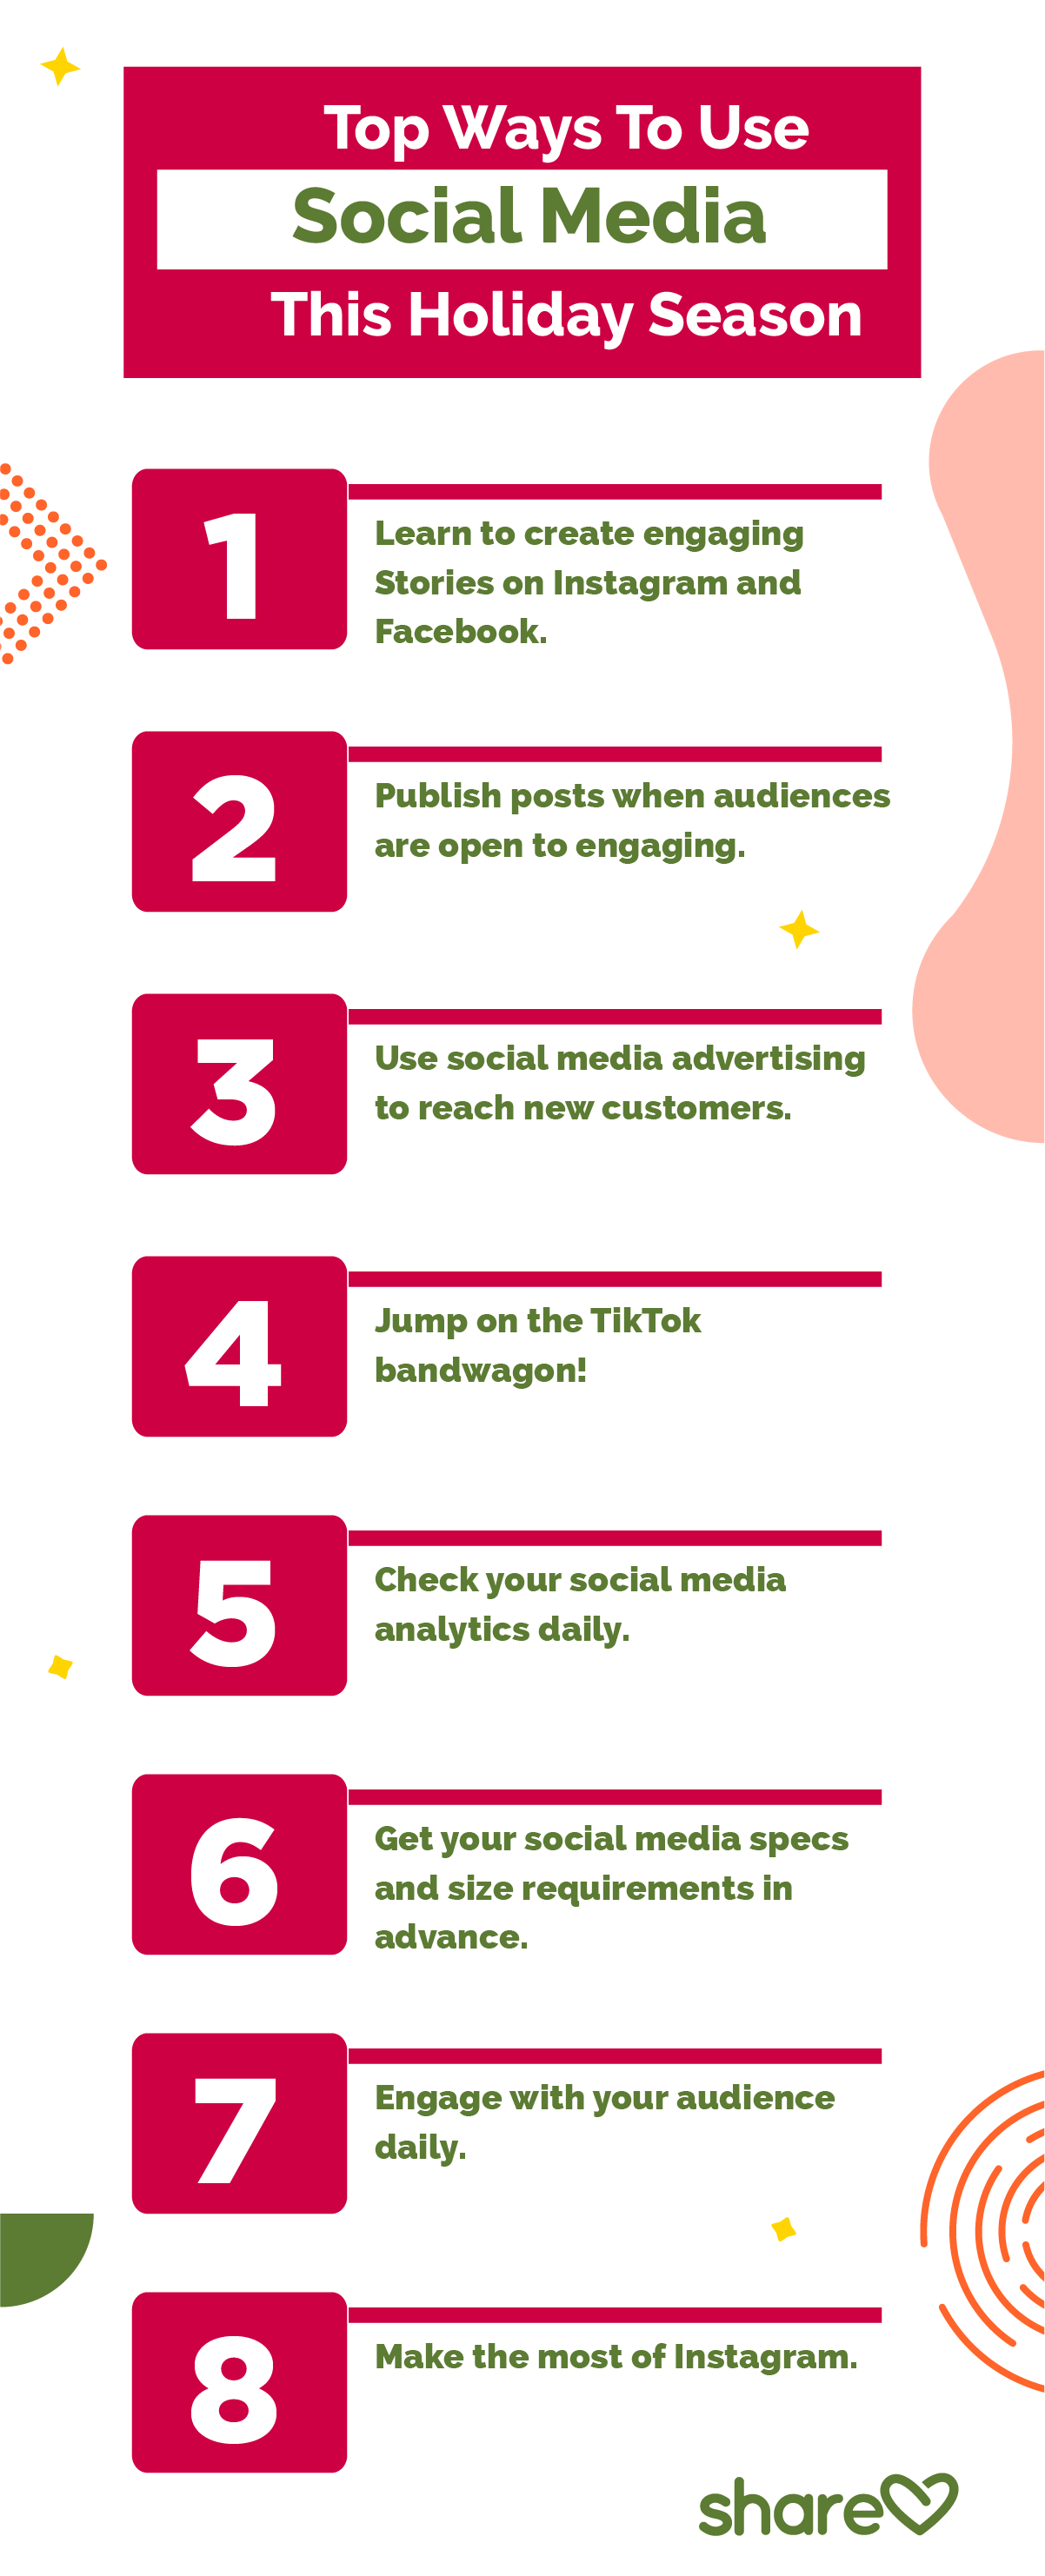 Top Ways To Use Social Media (Bonus Content)